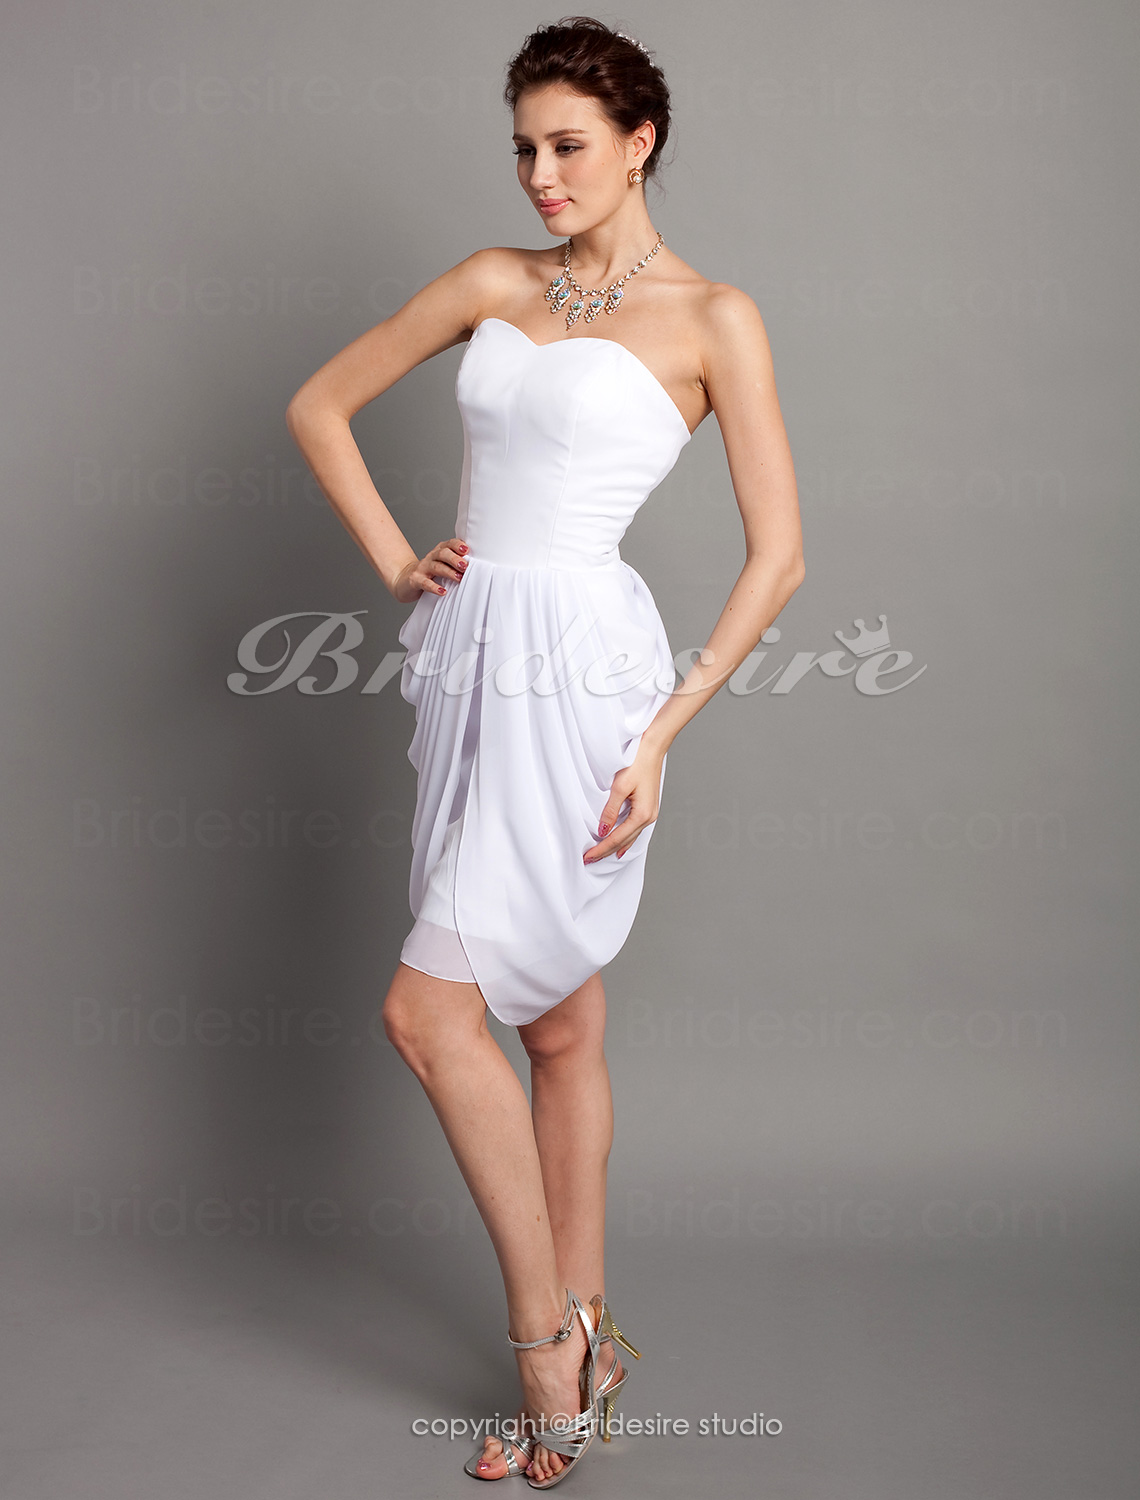 Sheath/ Column Knee-length Chiffon Sweetheart Bridesmaid Dress